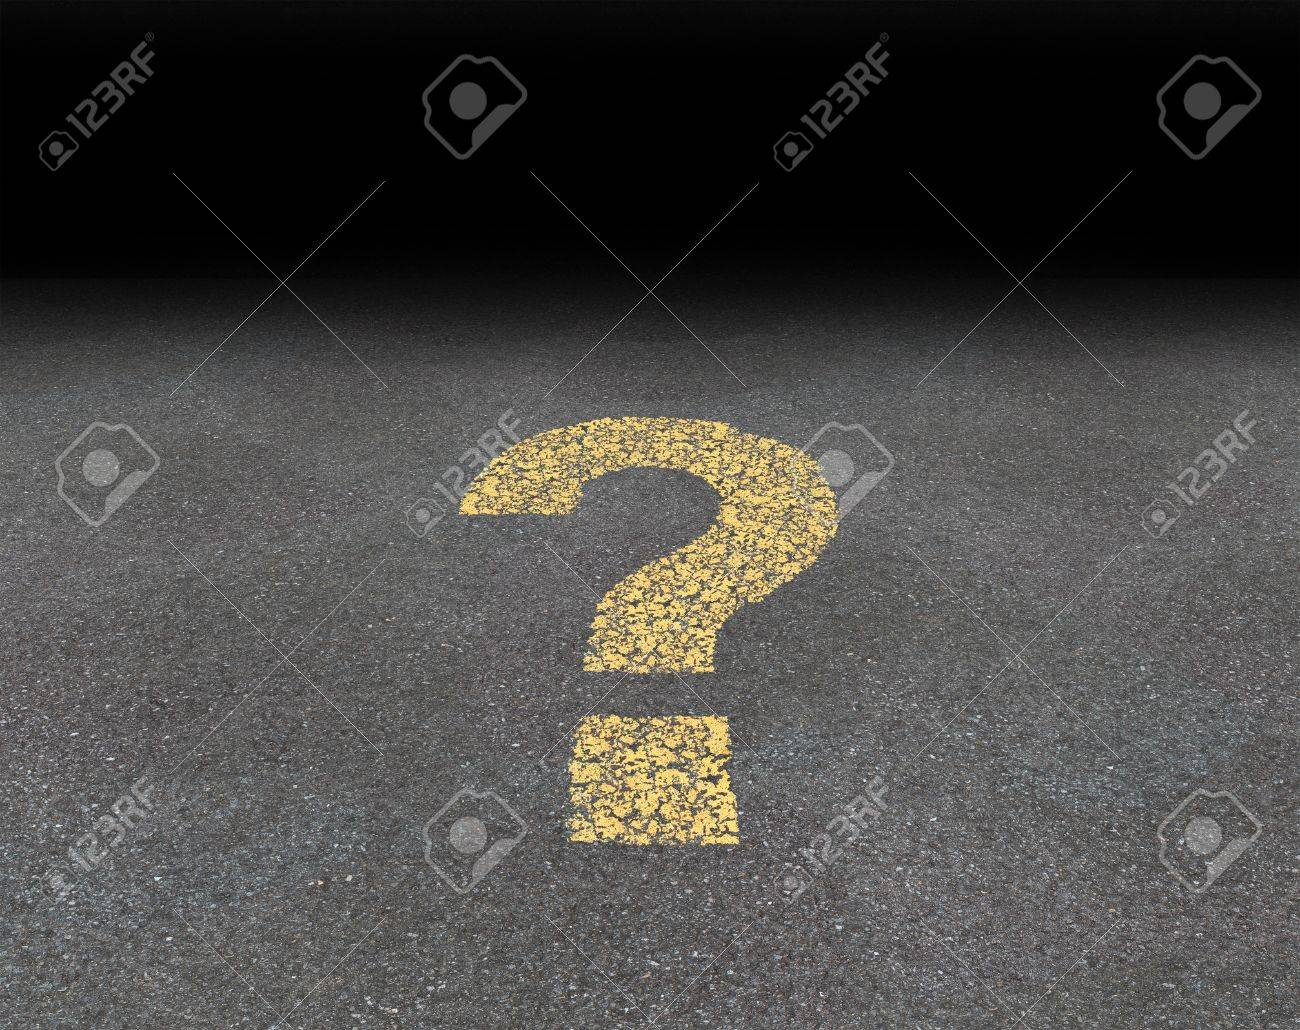 Question mark painted on an asphalt road as a symbol of strategy and decisions concept finding answers and solutions to confusing questions Stock Photo - 15154860